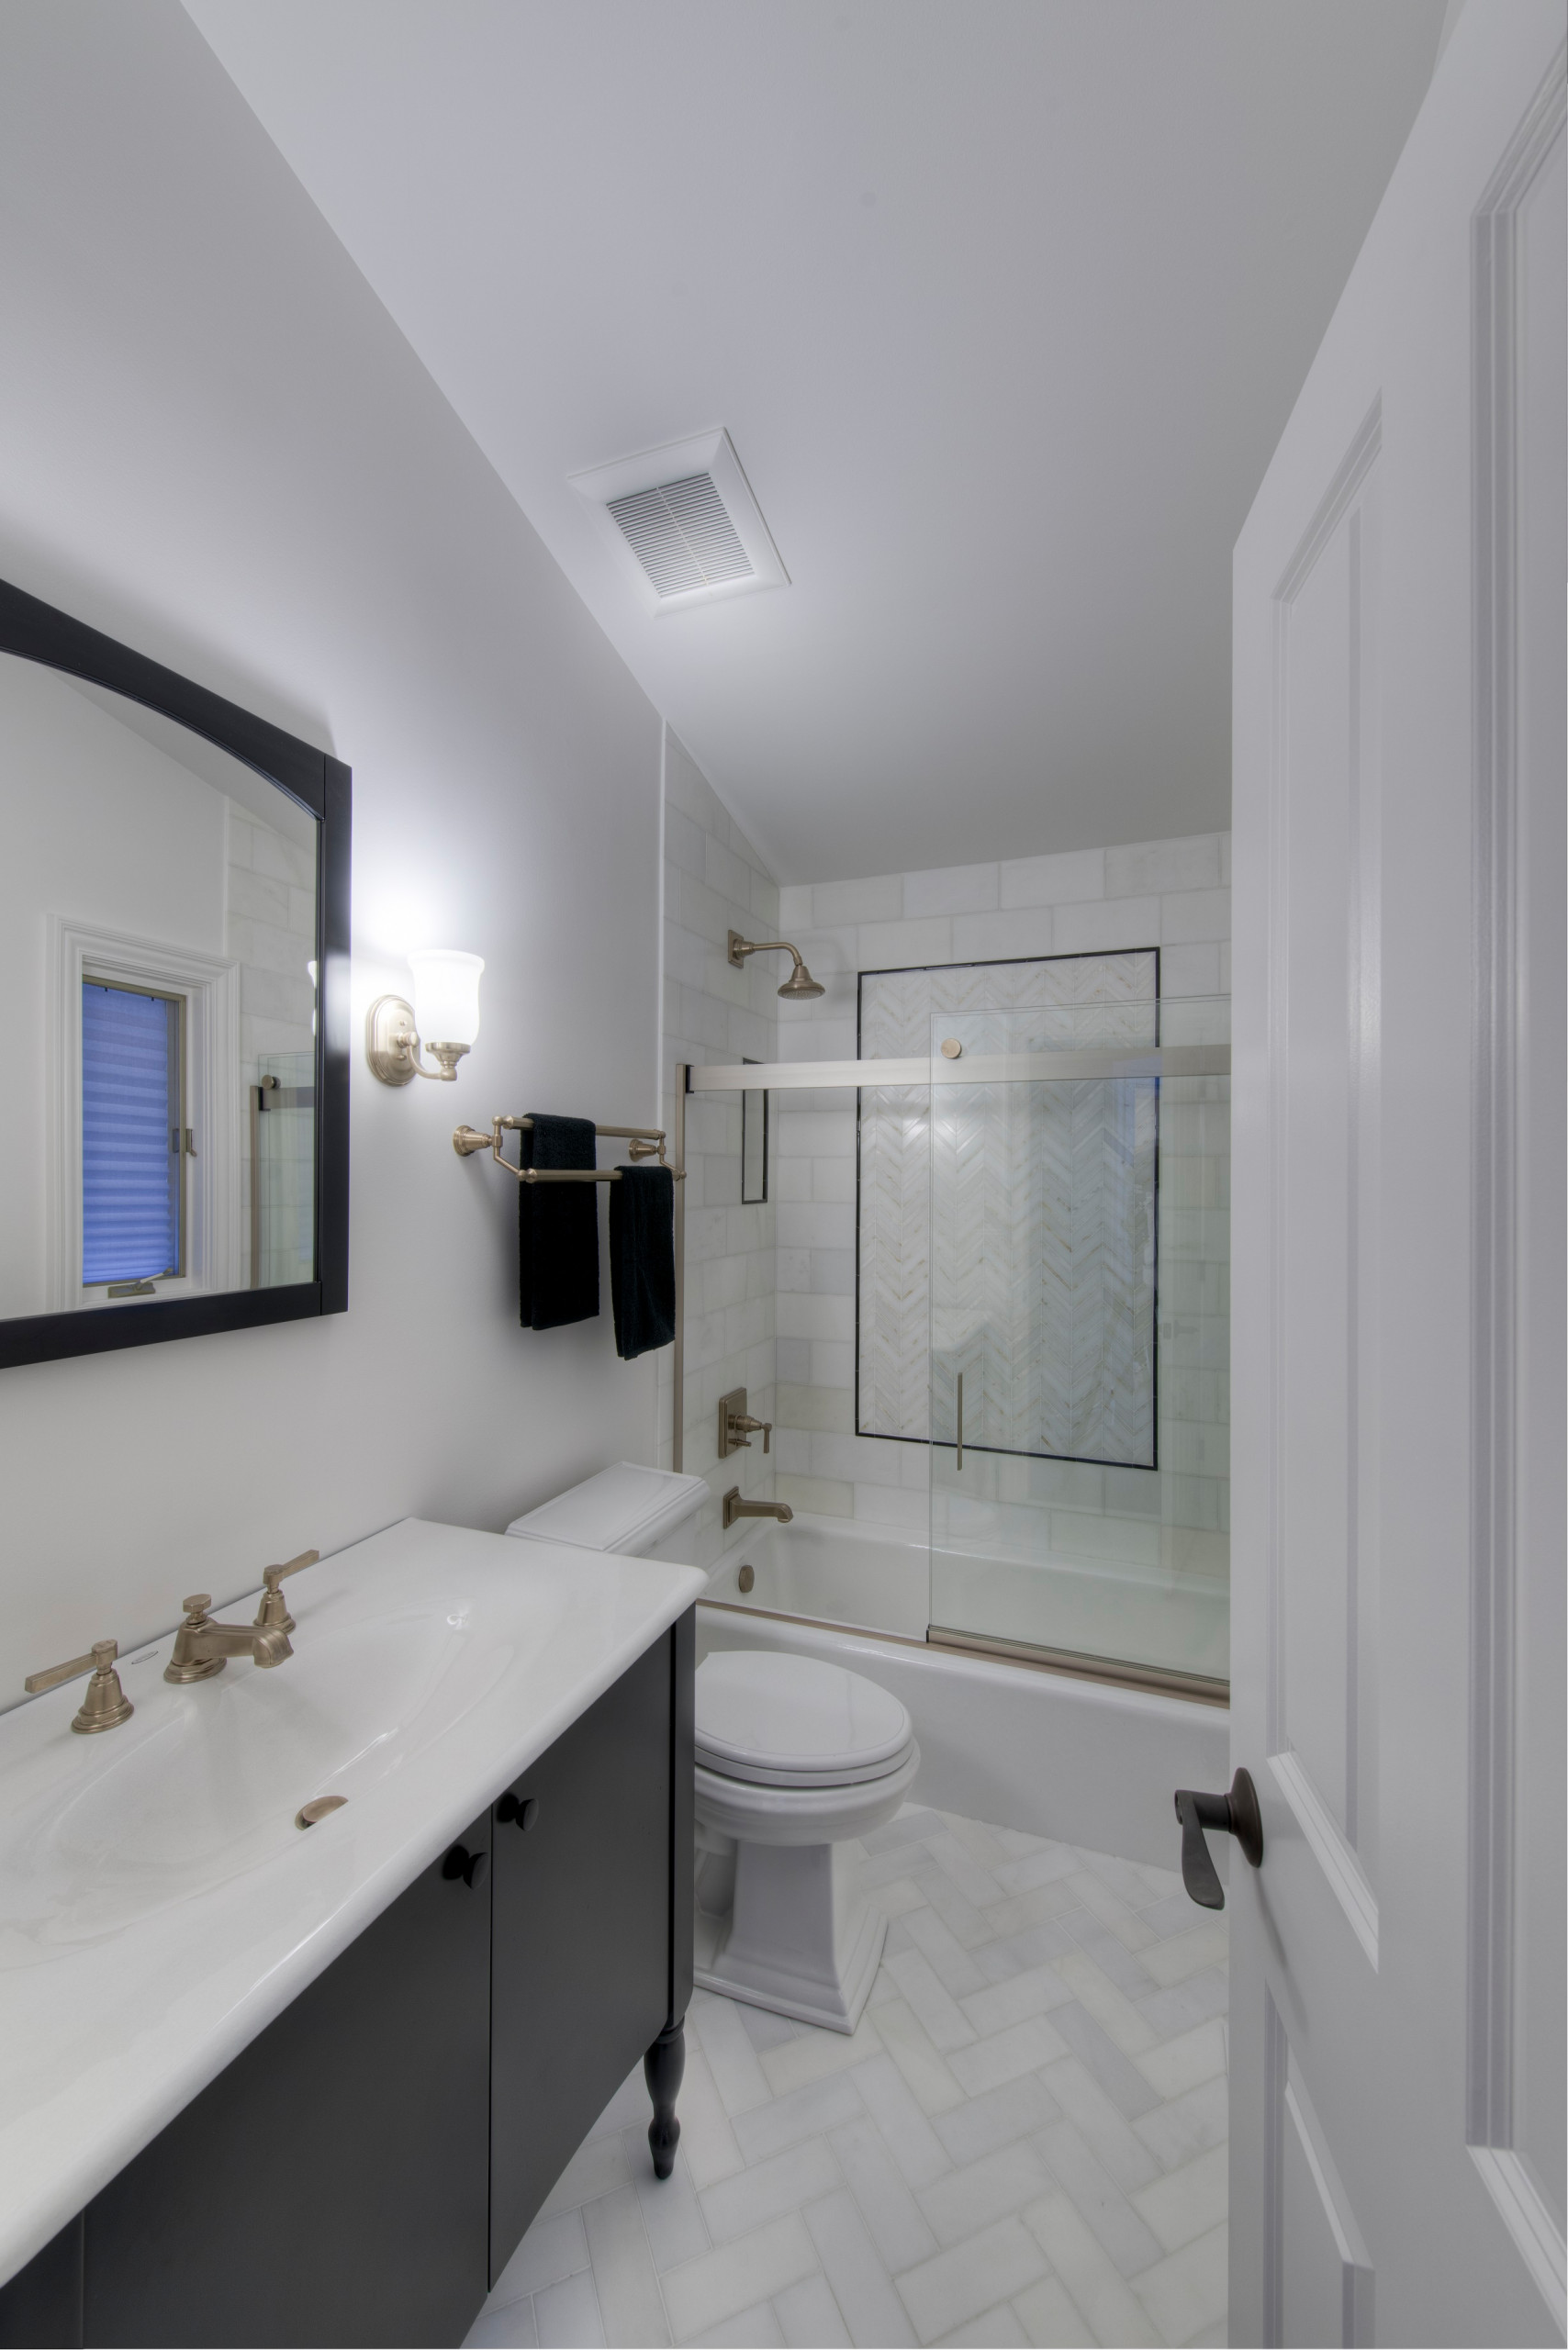 75 Beautiful Tub/Shower Combo Pictures & Ideas - January, 2021 | Houzz